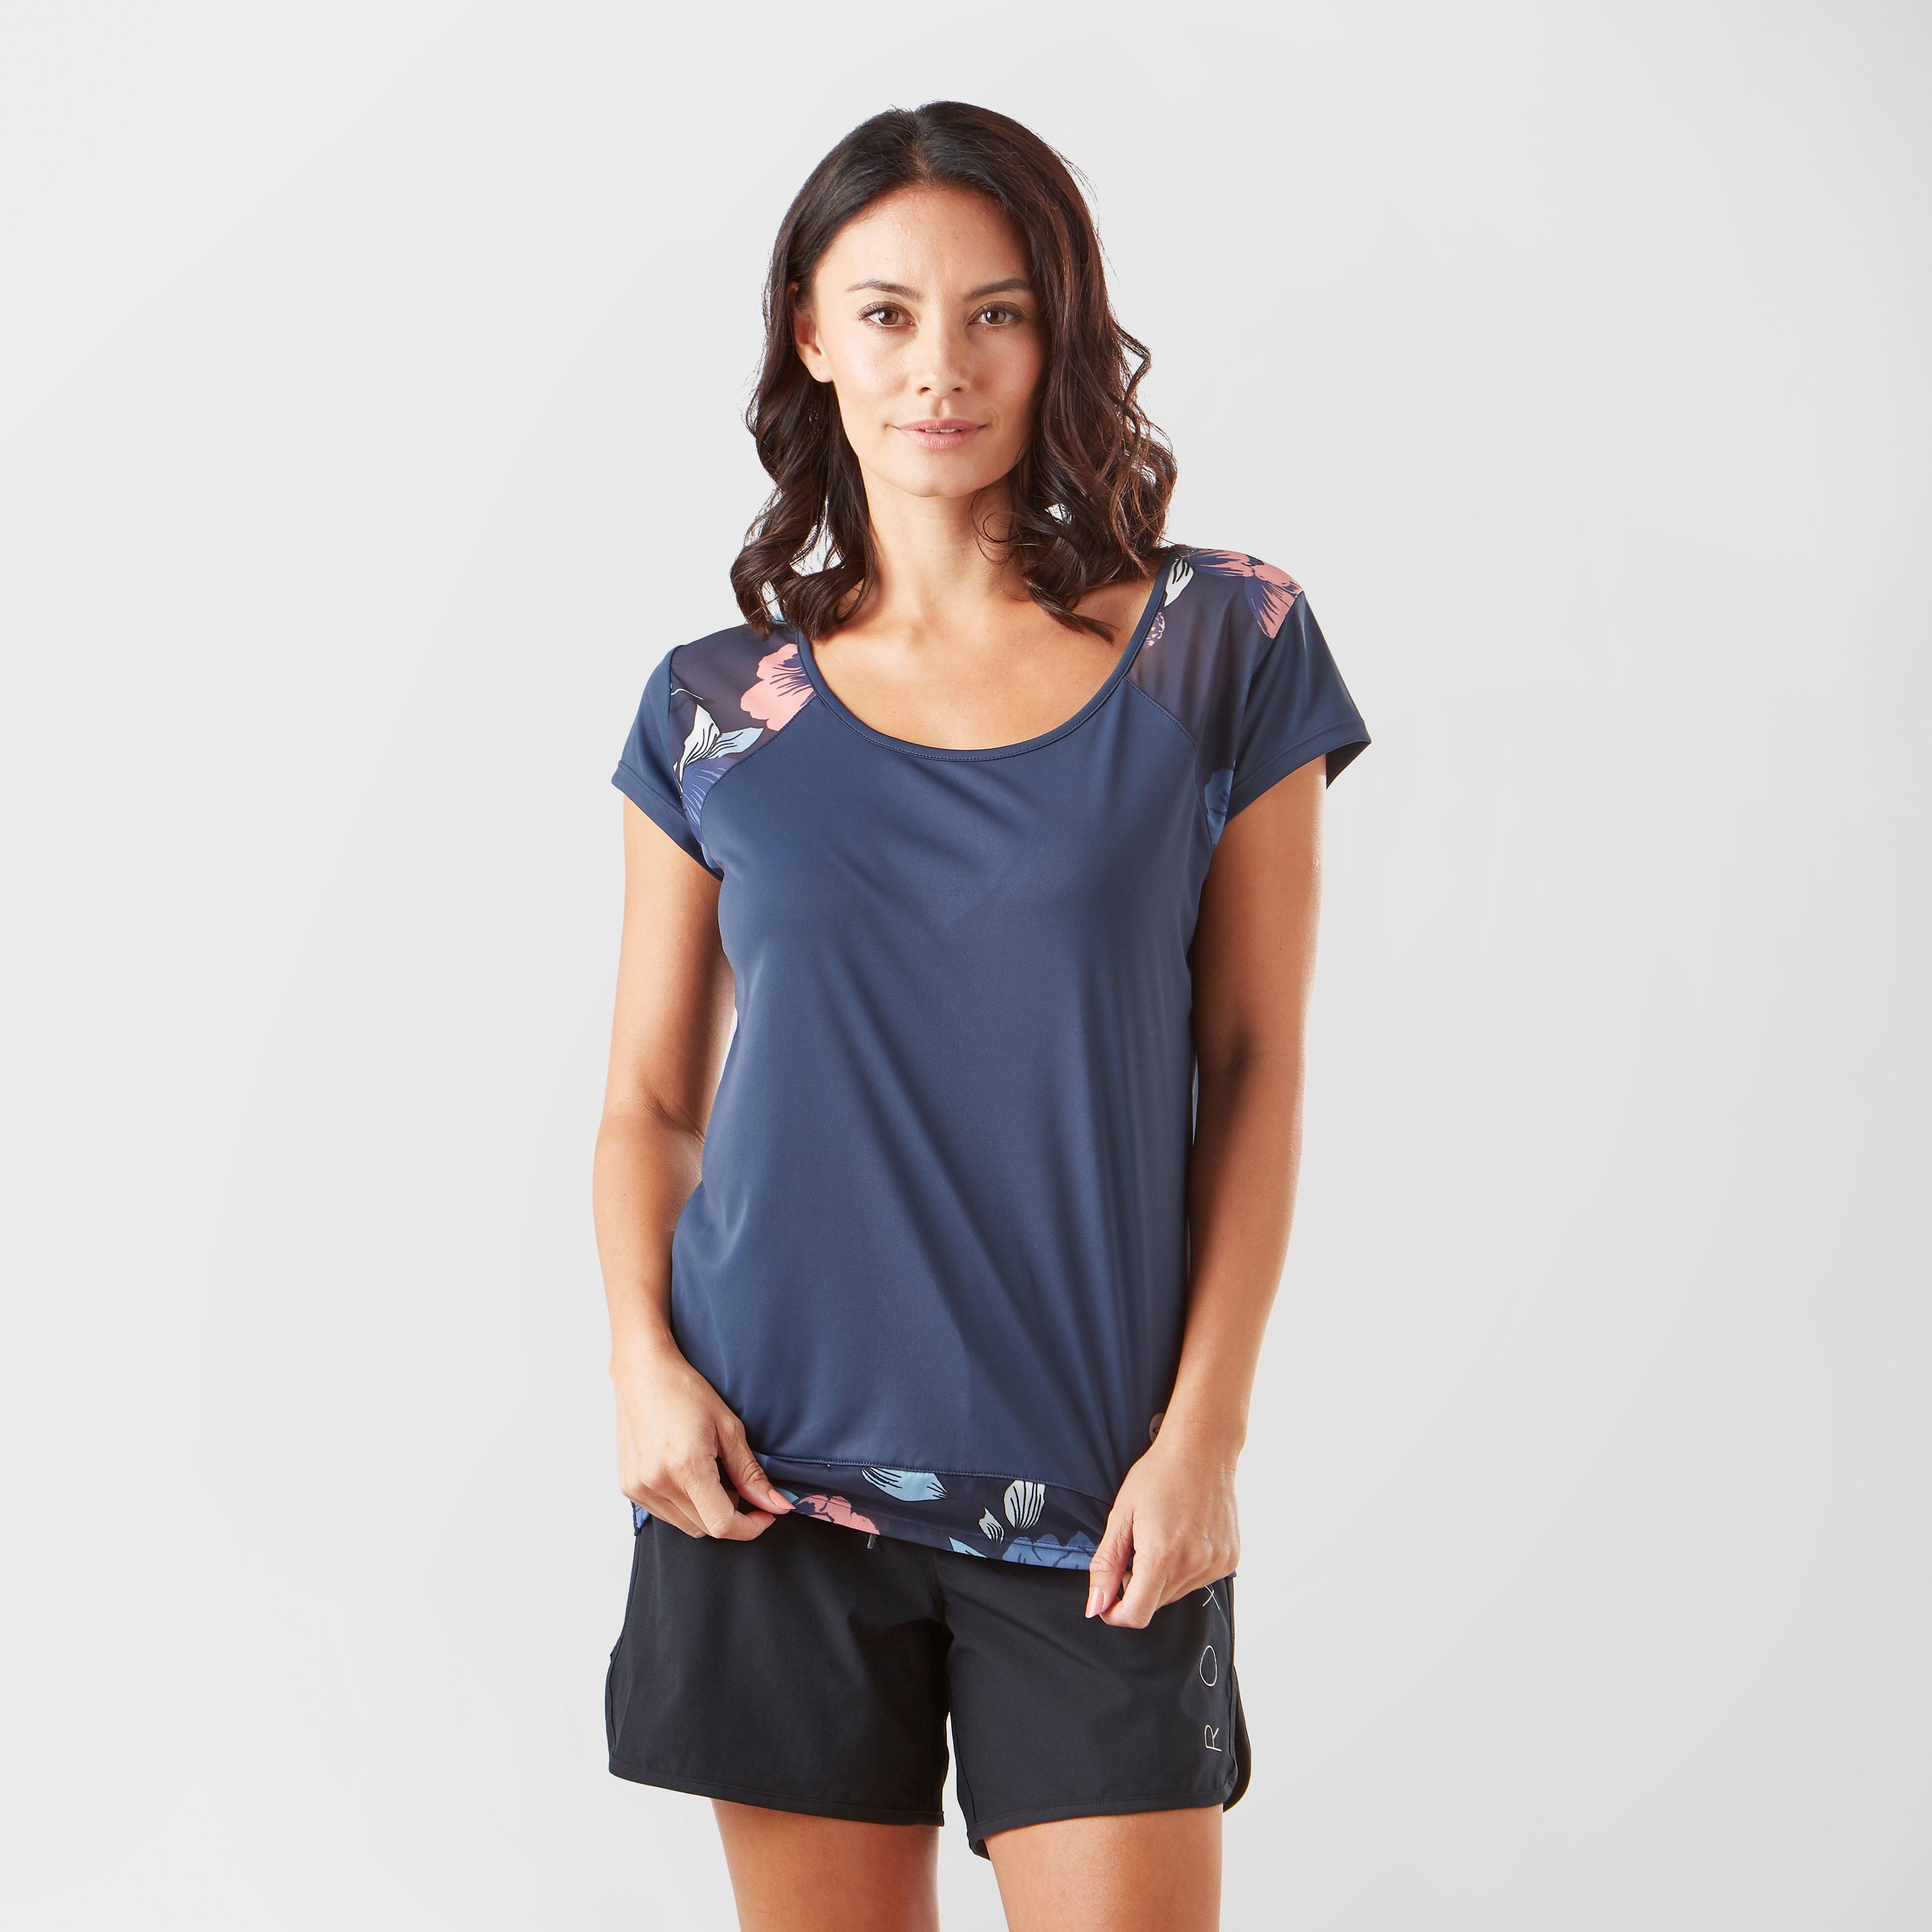 Roxy Roxy Womens Liquid Sunshine T-Shirt - Navy, Navy